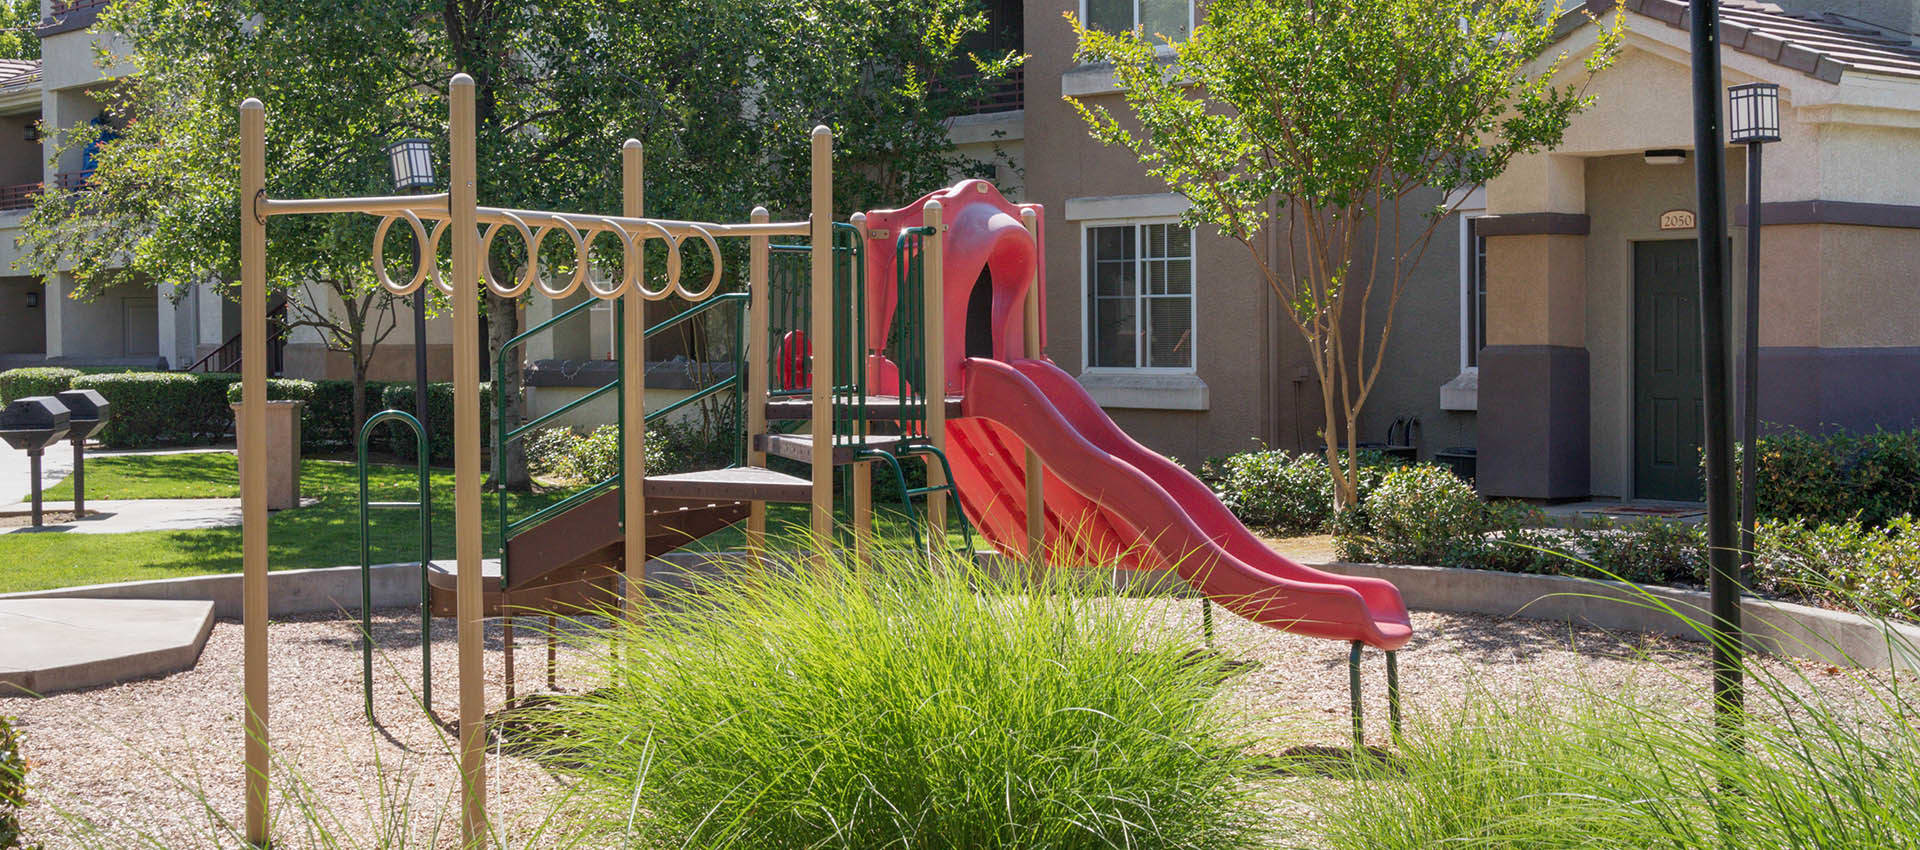 Lovely Playground at The Artisan Apartment Homes in Sacramento, California